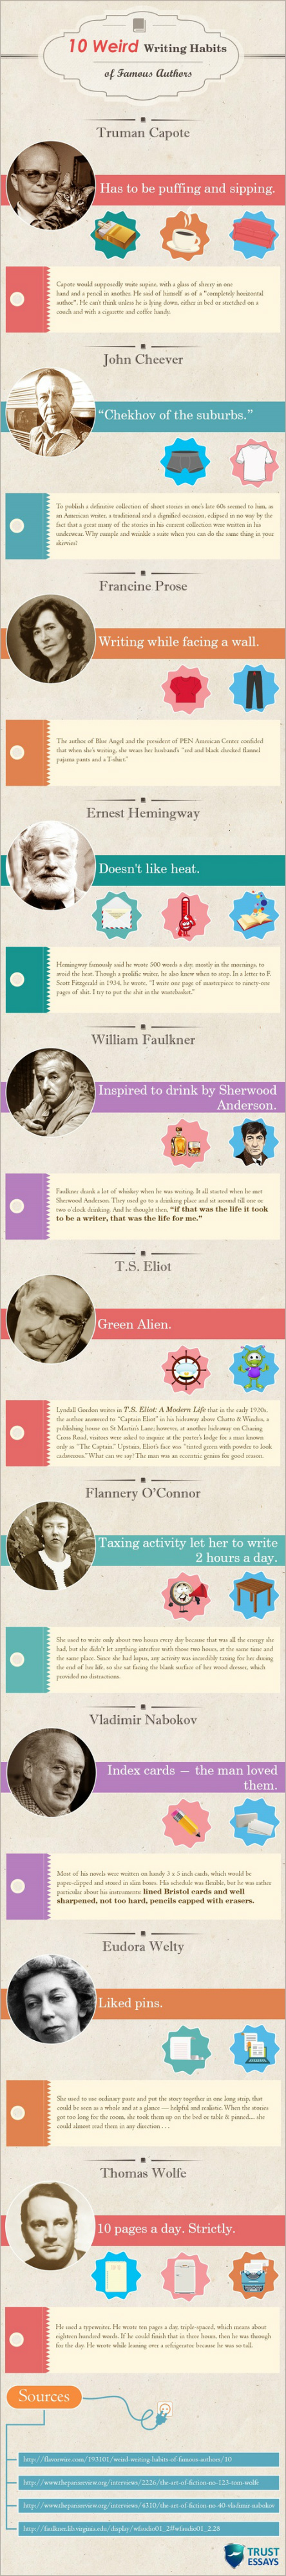 10 Weird Writing Habits of Famous Authors [Infographic]